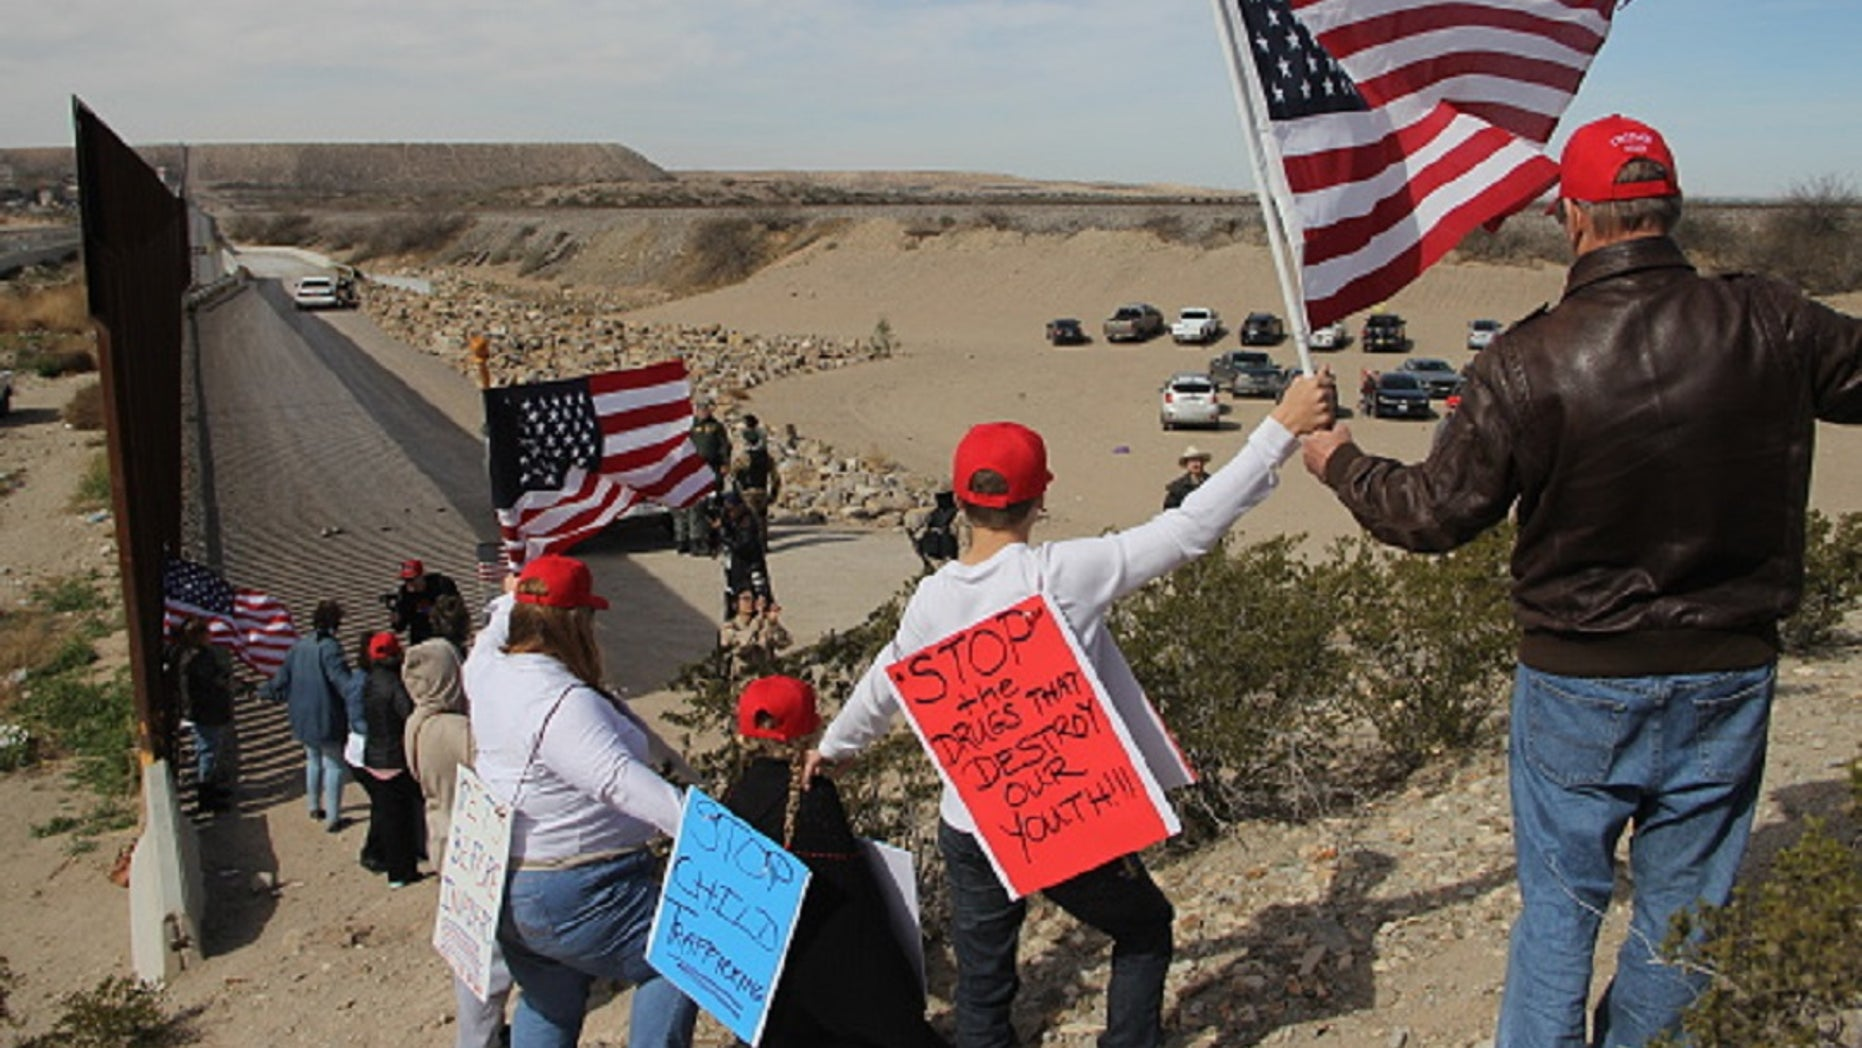 Supporters of U.S. border security make a human wall to demonstrate their support for a border wall between the U.S. and Mexico at Sunland Park N.M. Feb. 9 2019